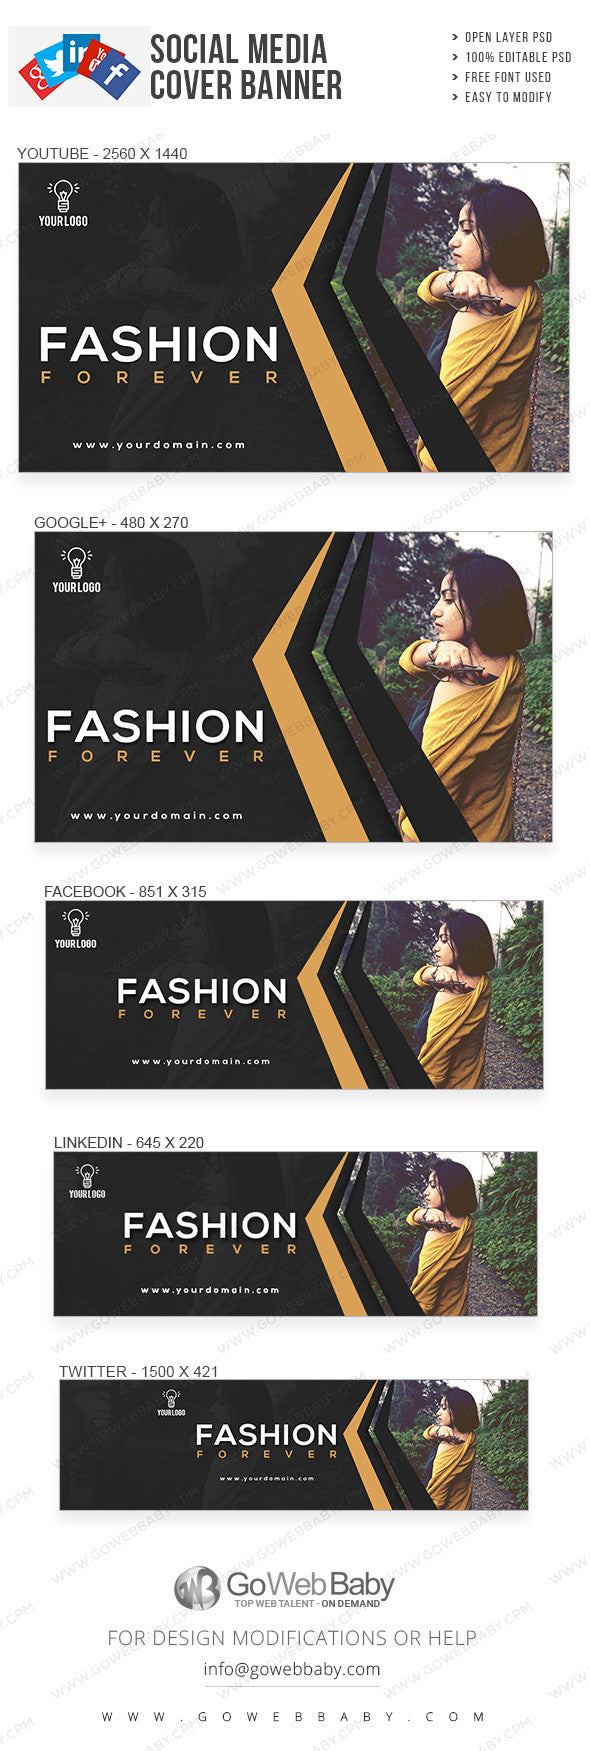 Latest Fashion Social Media Covers For Website Marketing - GoWebBaby.Com